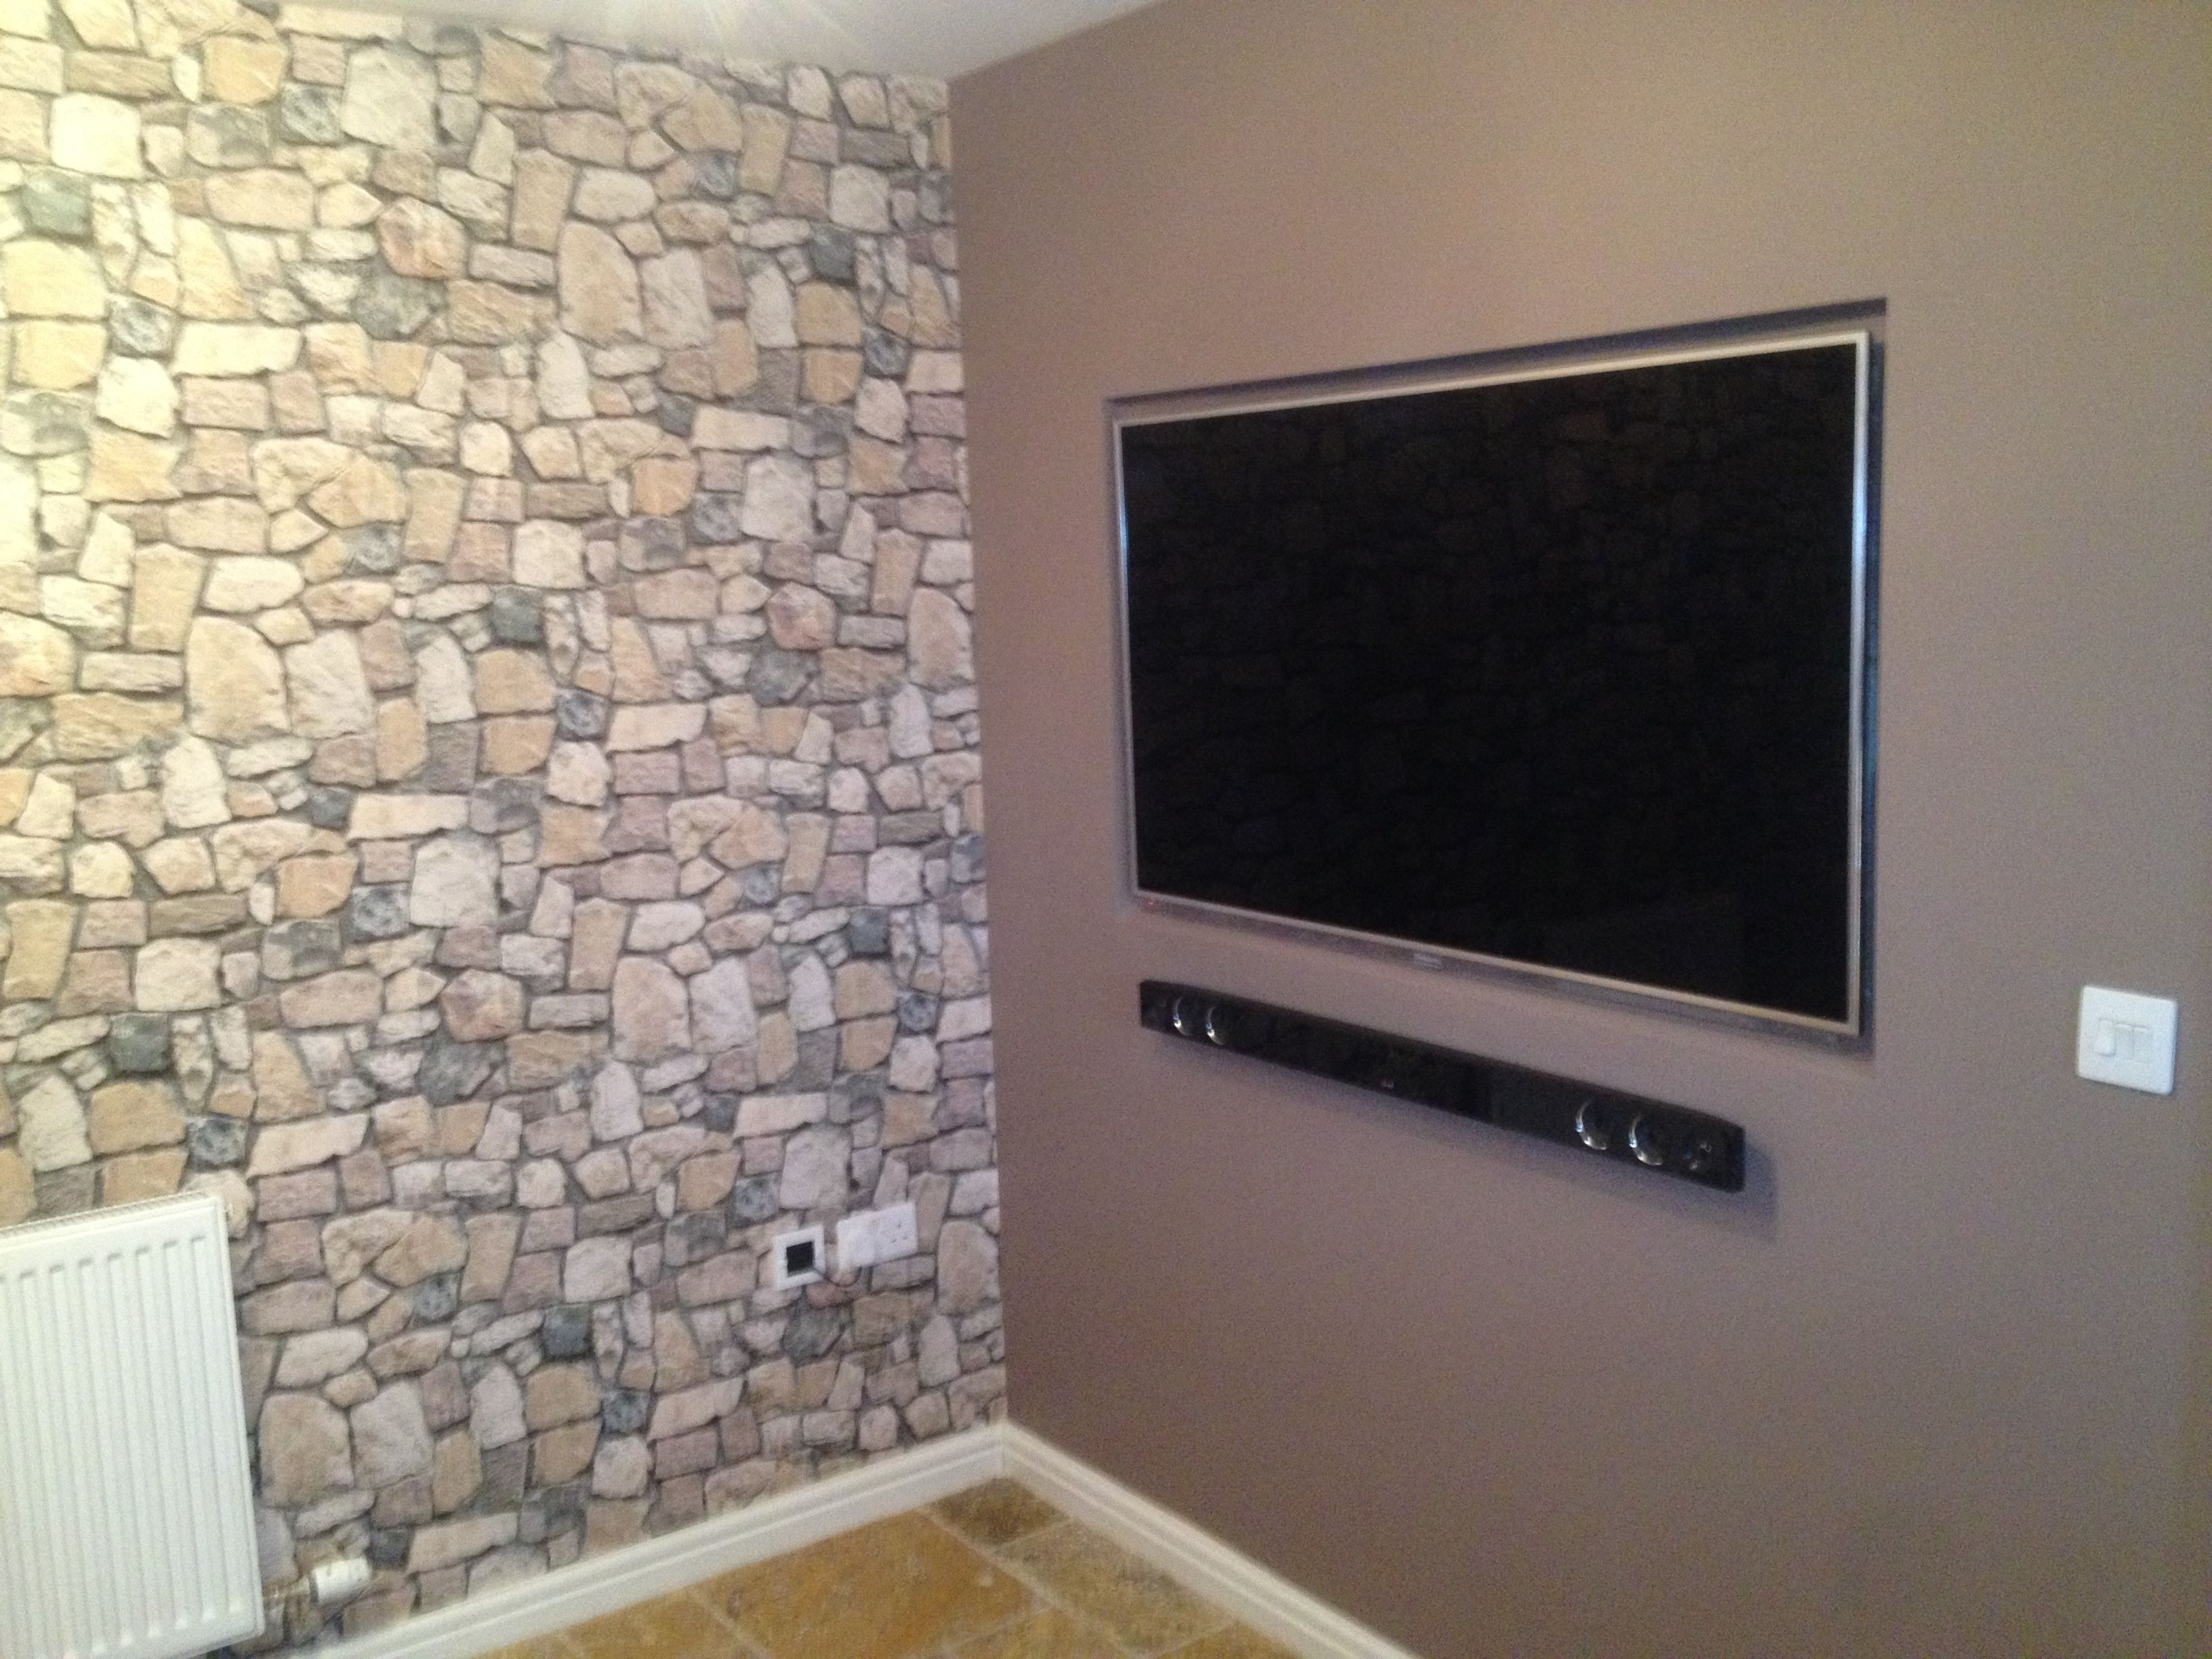 Tv Installation Tv On Wall Home Theater Setup Home Theater Installation Tv Installation